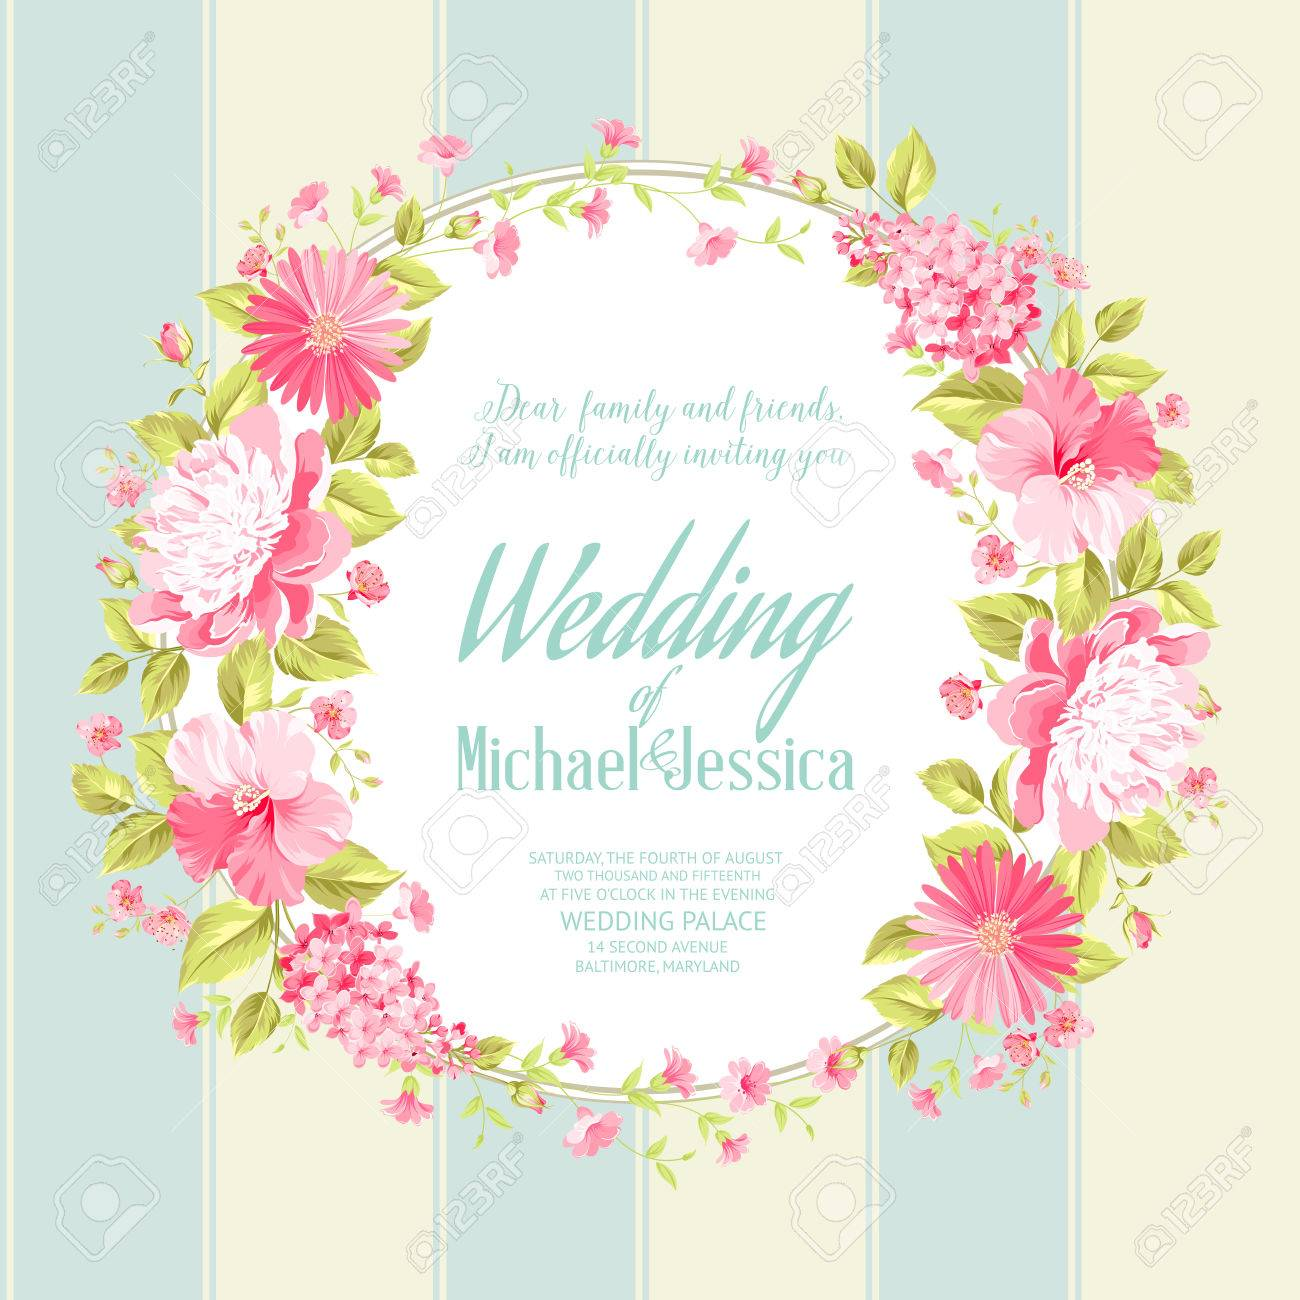 Wedding Invitation Card With Custom Text Vintage Floral – Spring or Summer Theme Invitation Cards